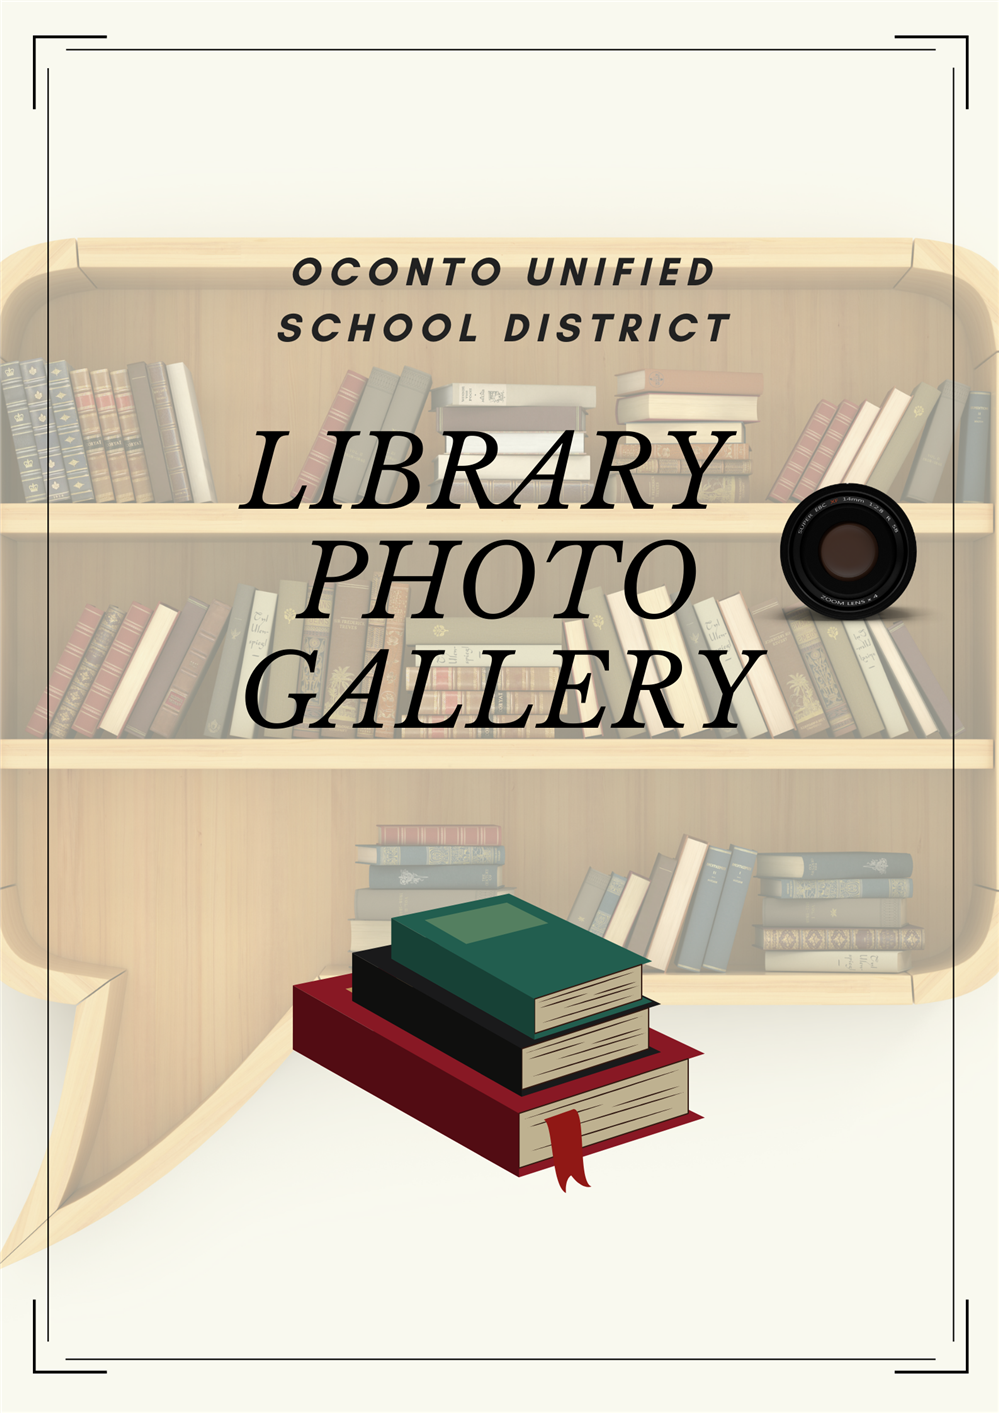 LIBRARY PHOTO GALLERY